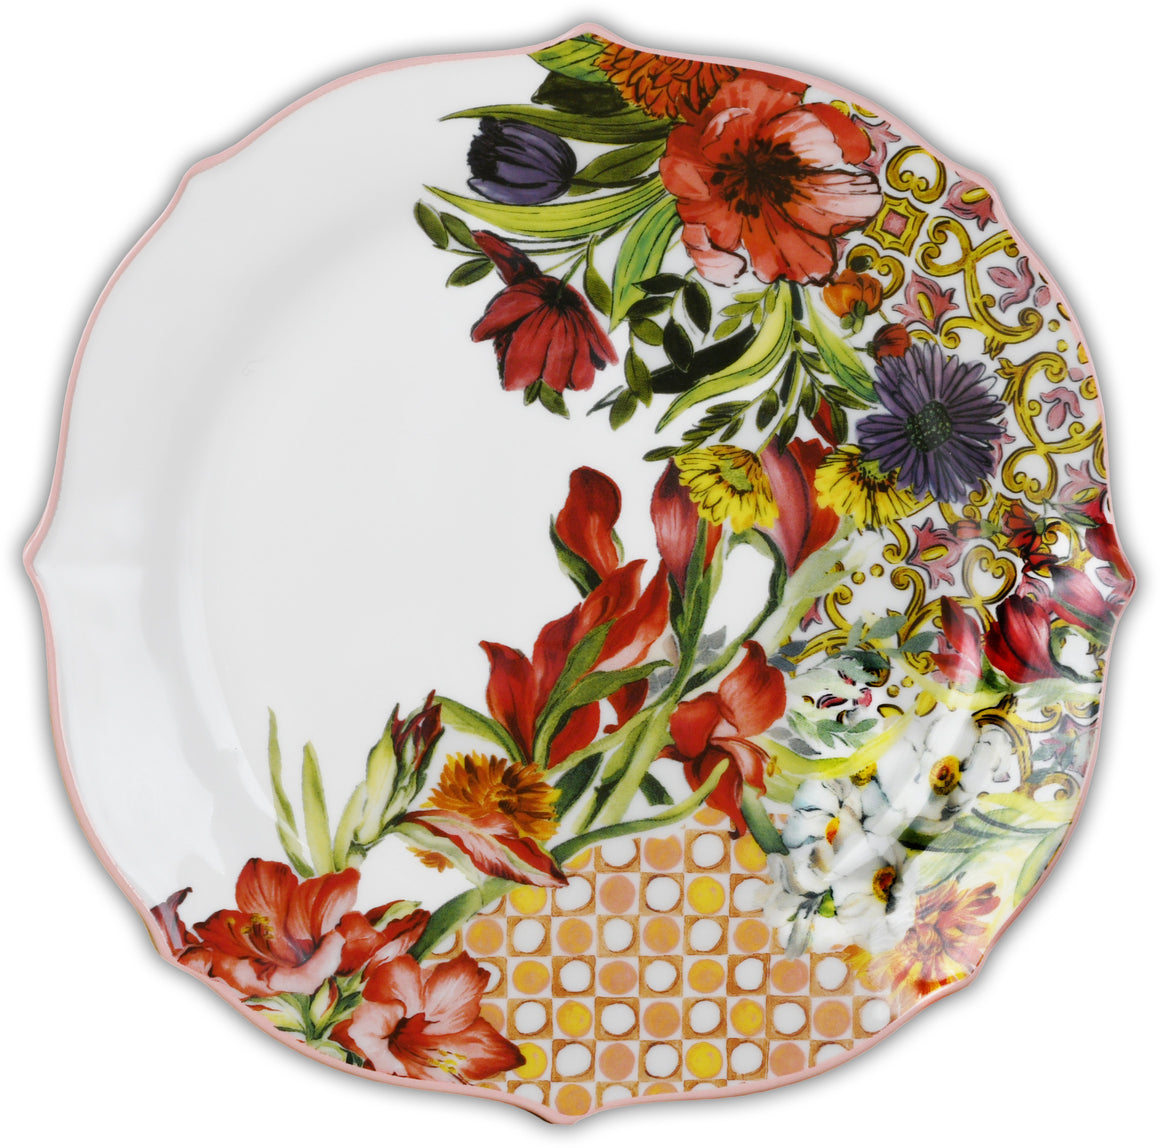 Milano Porcelain Plate - Coral